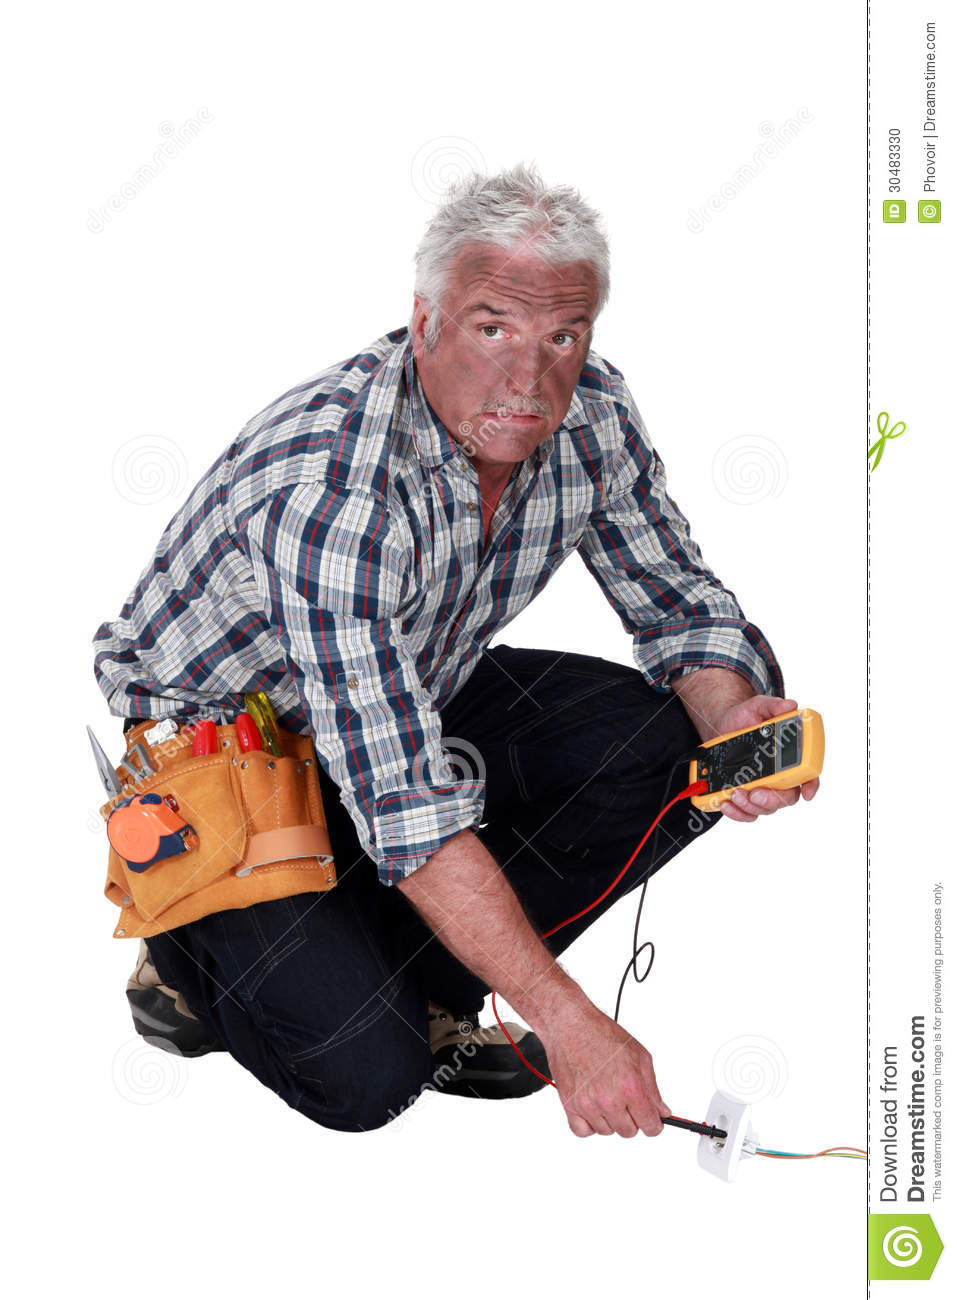 Electrician Checking Voltage Stock Photo  Image 30483330. Family Law Attorney Omaha Ne. Promo Code Home Decorators Collection. Online Masters Programs Computer Science. What Is Laser Skin Tightening. Online Video Game Design Courses. Registering A Web Address Contact Us By Phone. Online Tx Defensive Driving Course. Milpitas Christian School Bogati Urn Company